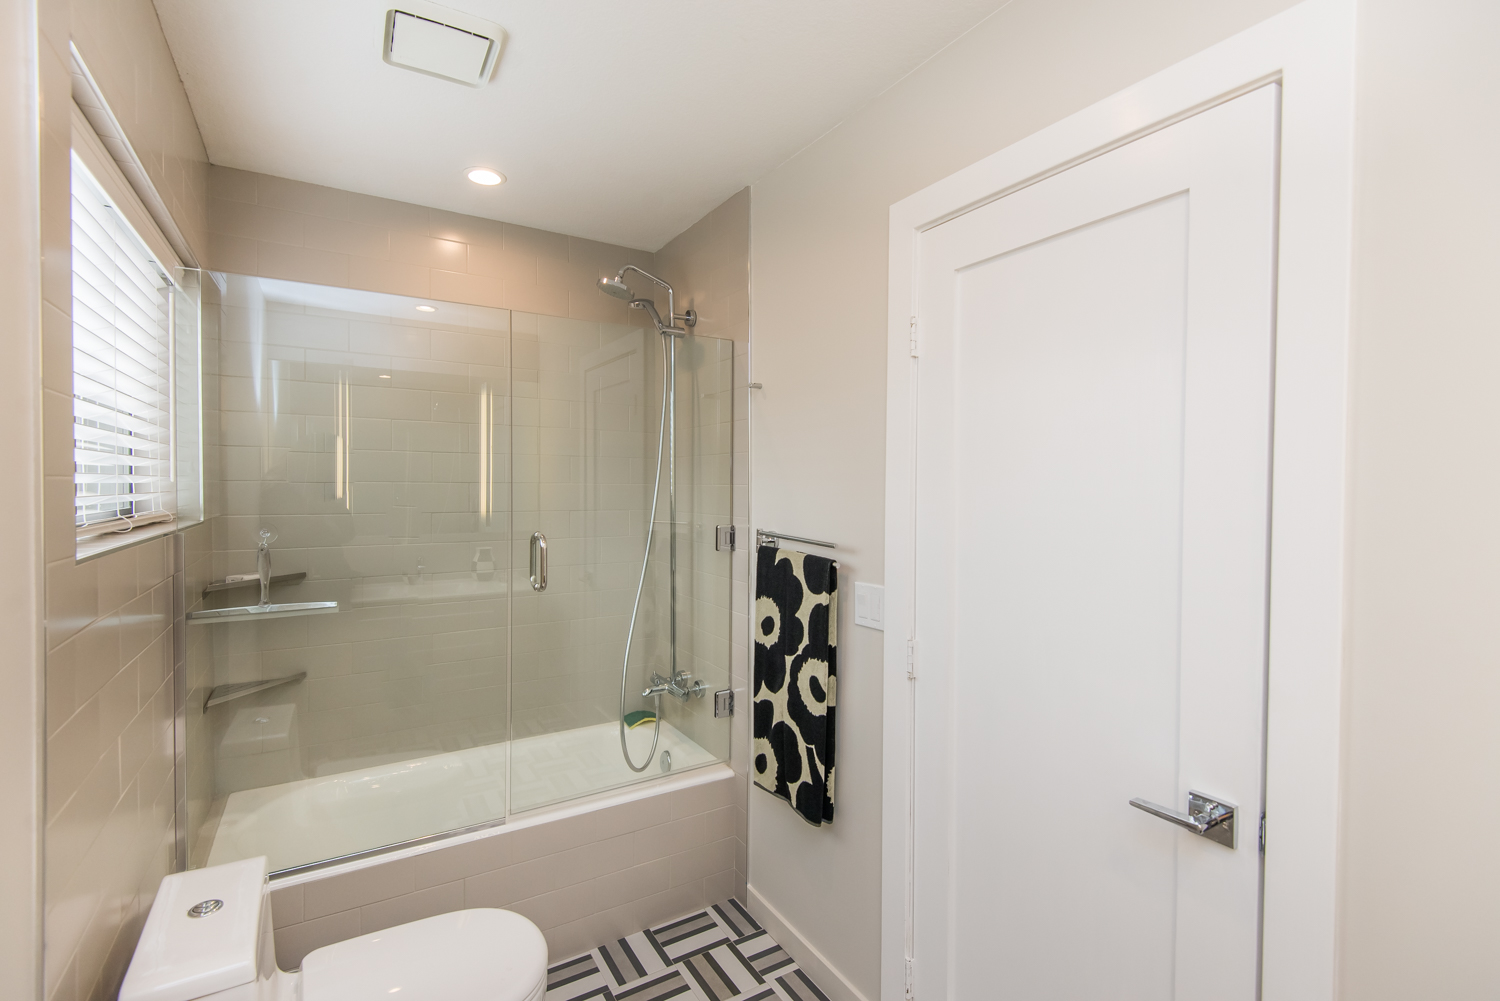 Tub-shower with glass enclosure completes the master bath.